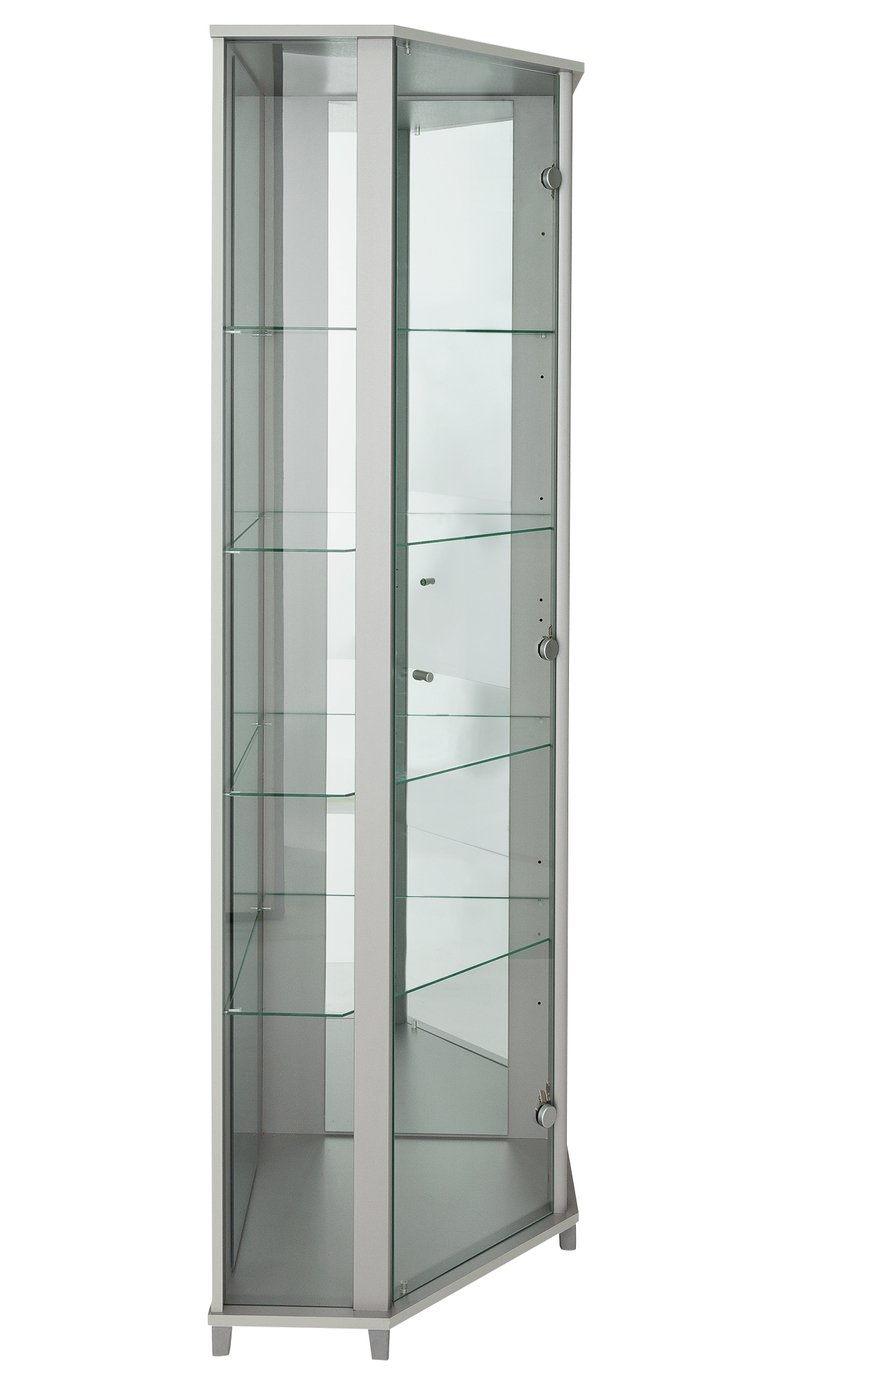 Metal glass cabinet Vitrine Argos Home Glass Dr Corner Display Cabinet Silver Effect Etsy Buy Argos Home Glass Dr Corner Display Cabinet Silver Effect